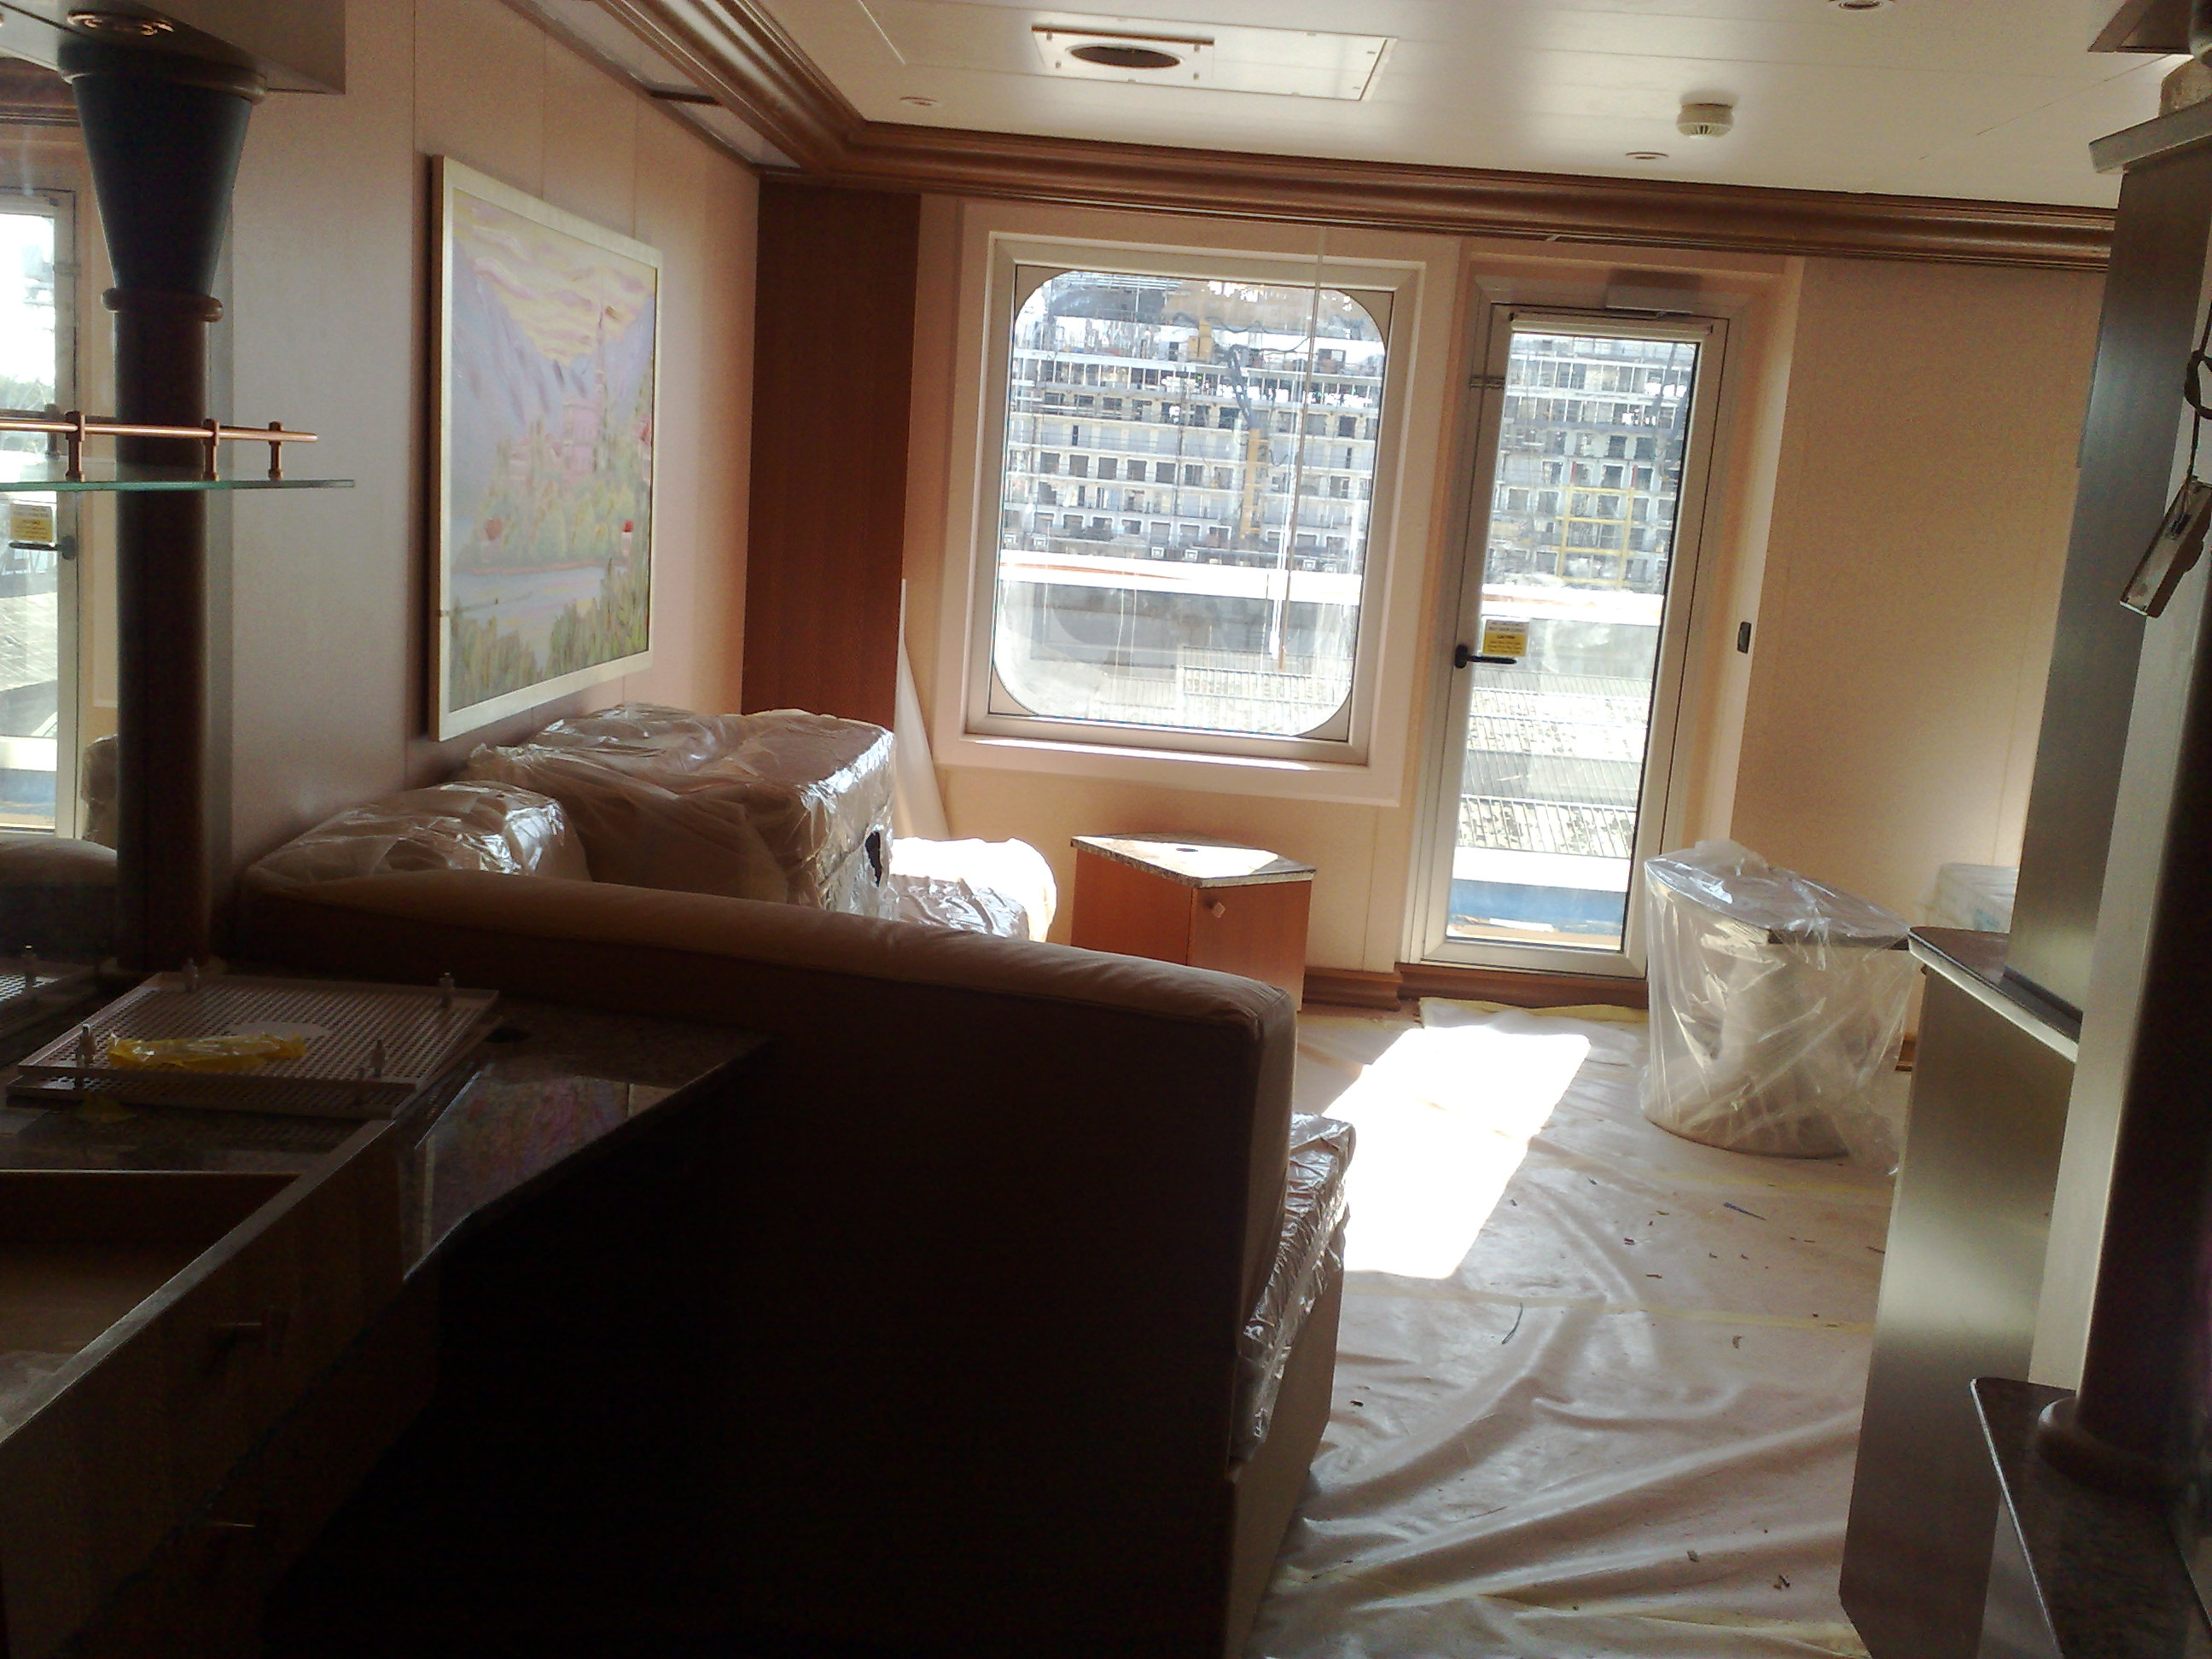 Carnival Dream Cove Balcony Pictures - CruiseMates Cruise ...